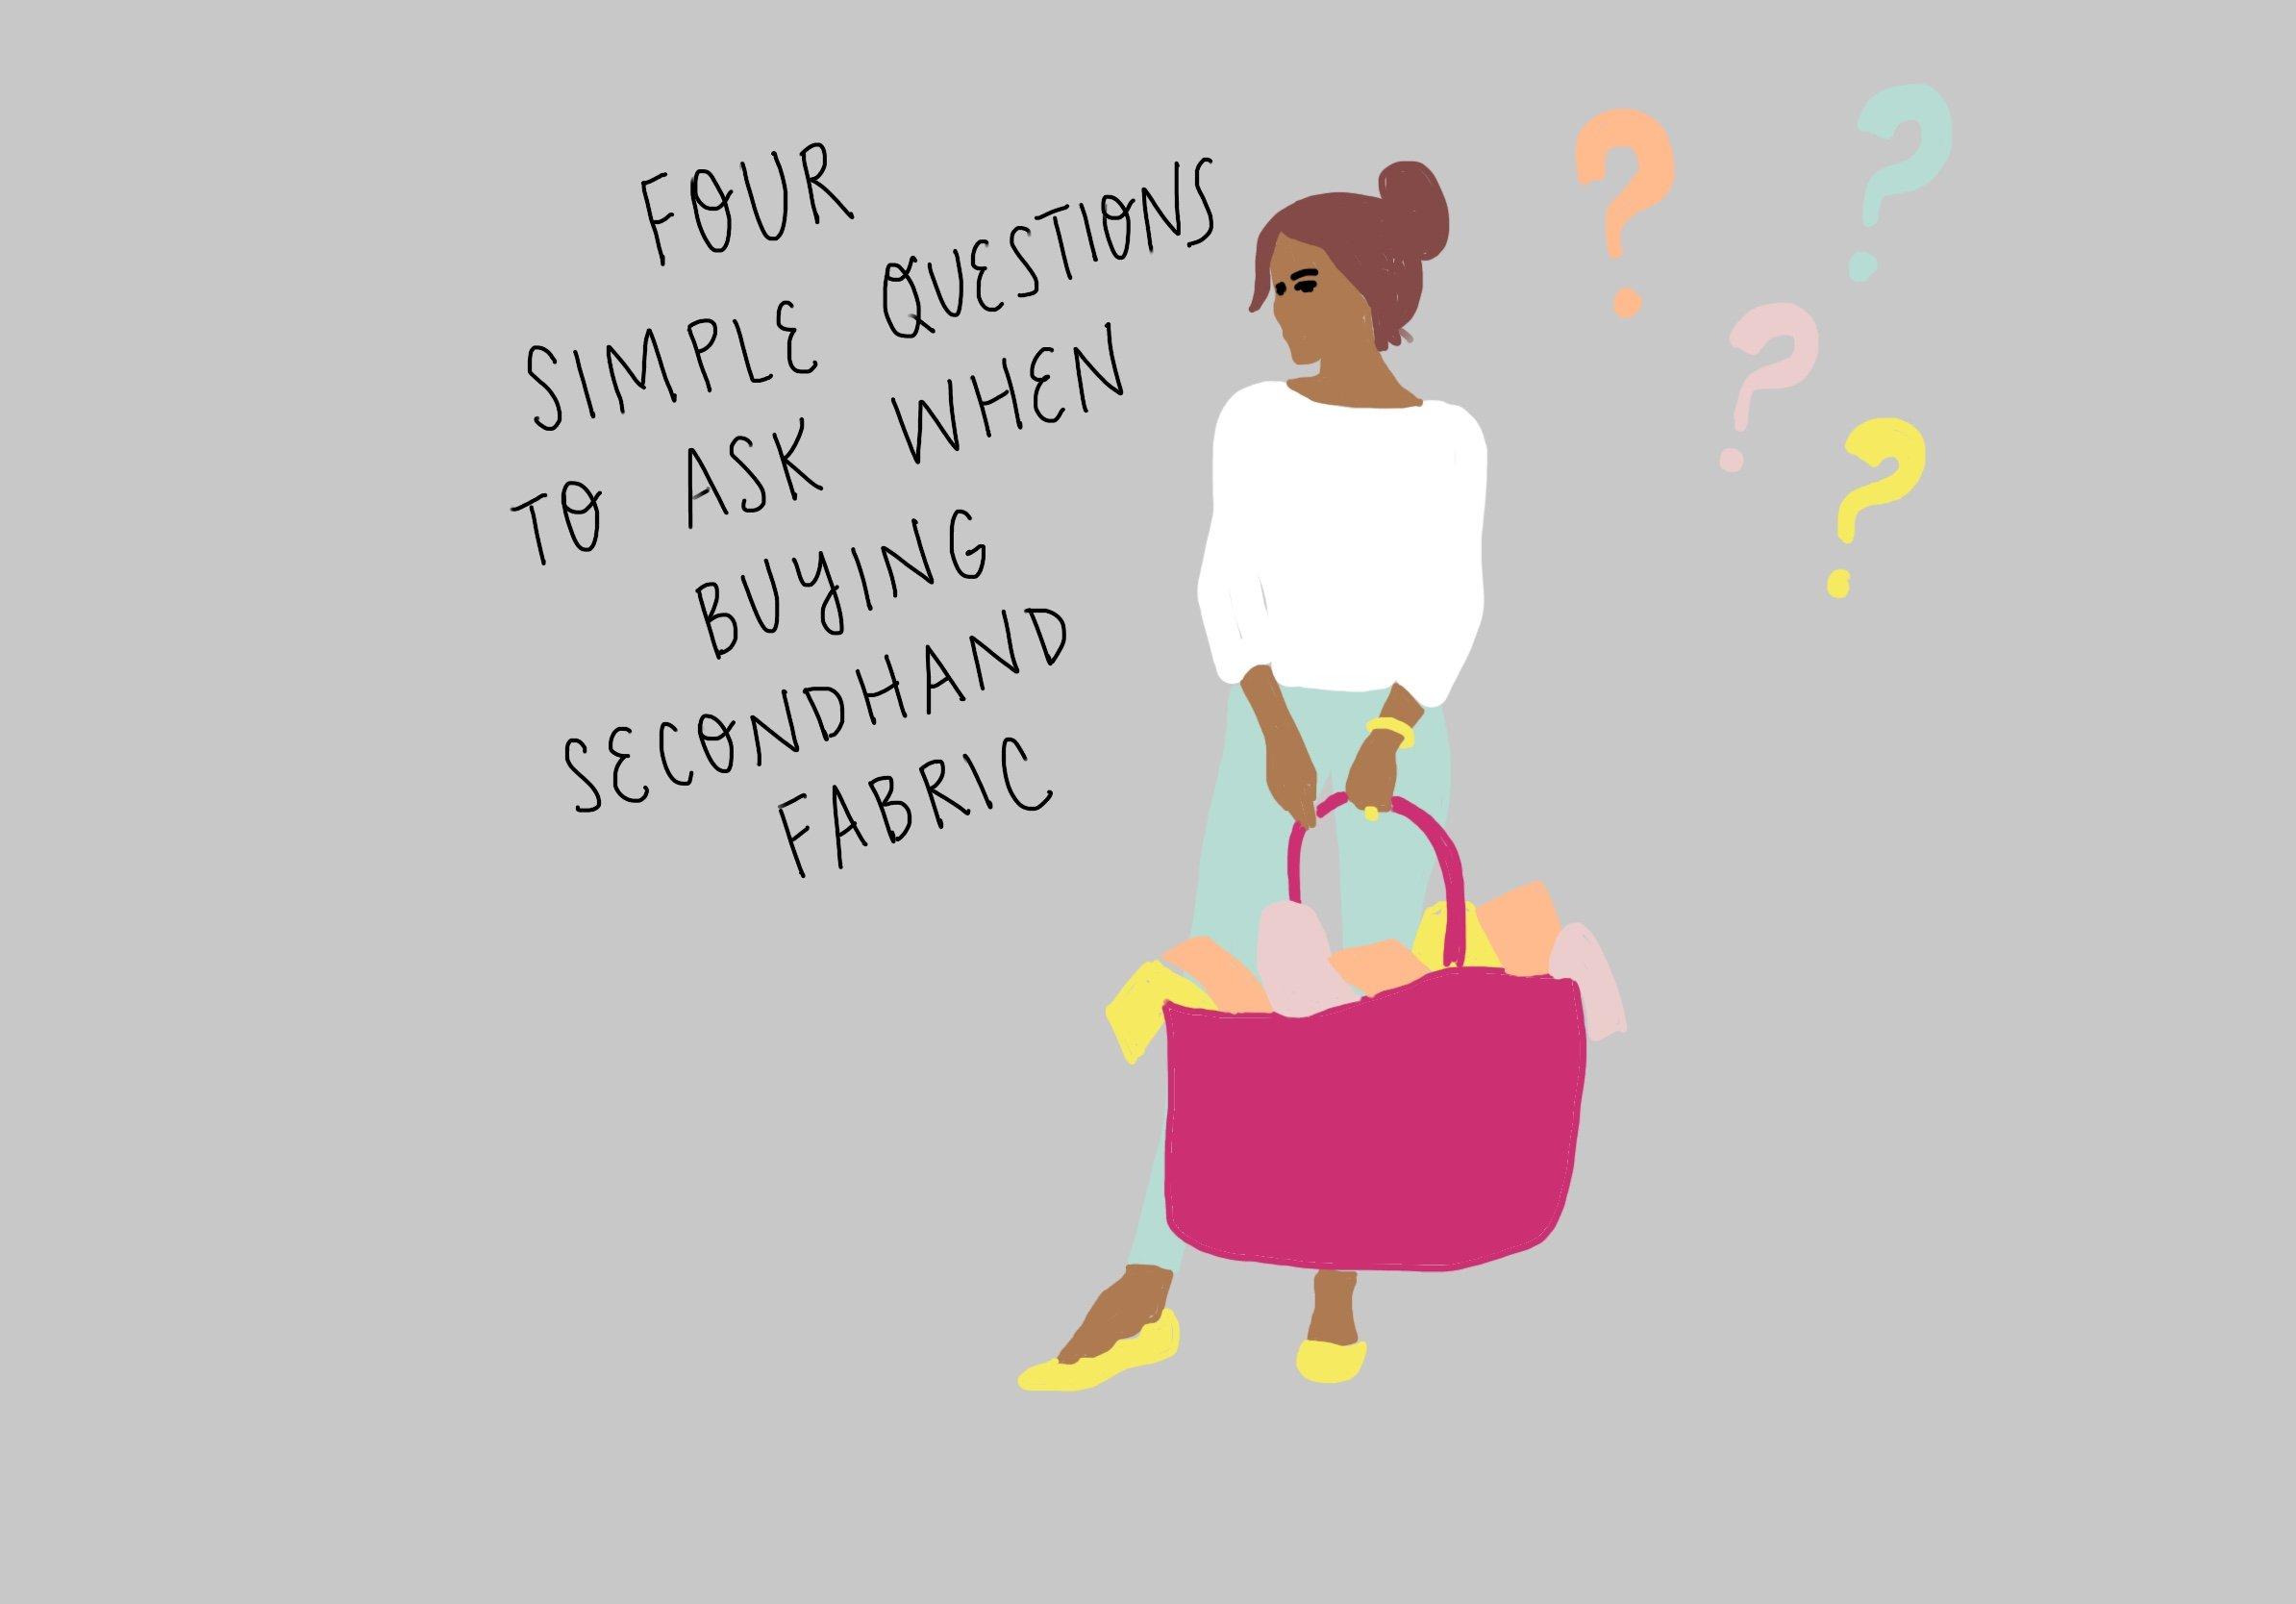 Four Simple Questions to Ask When Buying Secondhand Fabric on FeelGood Fibers